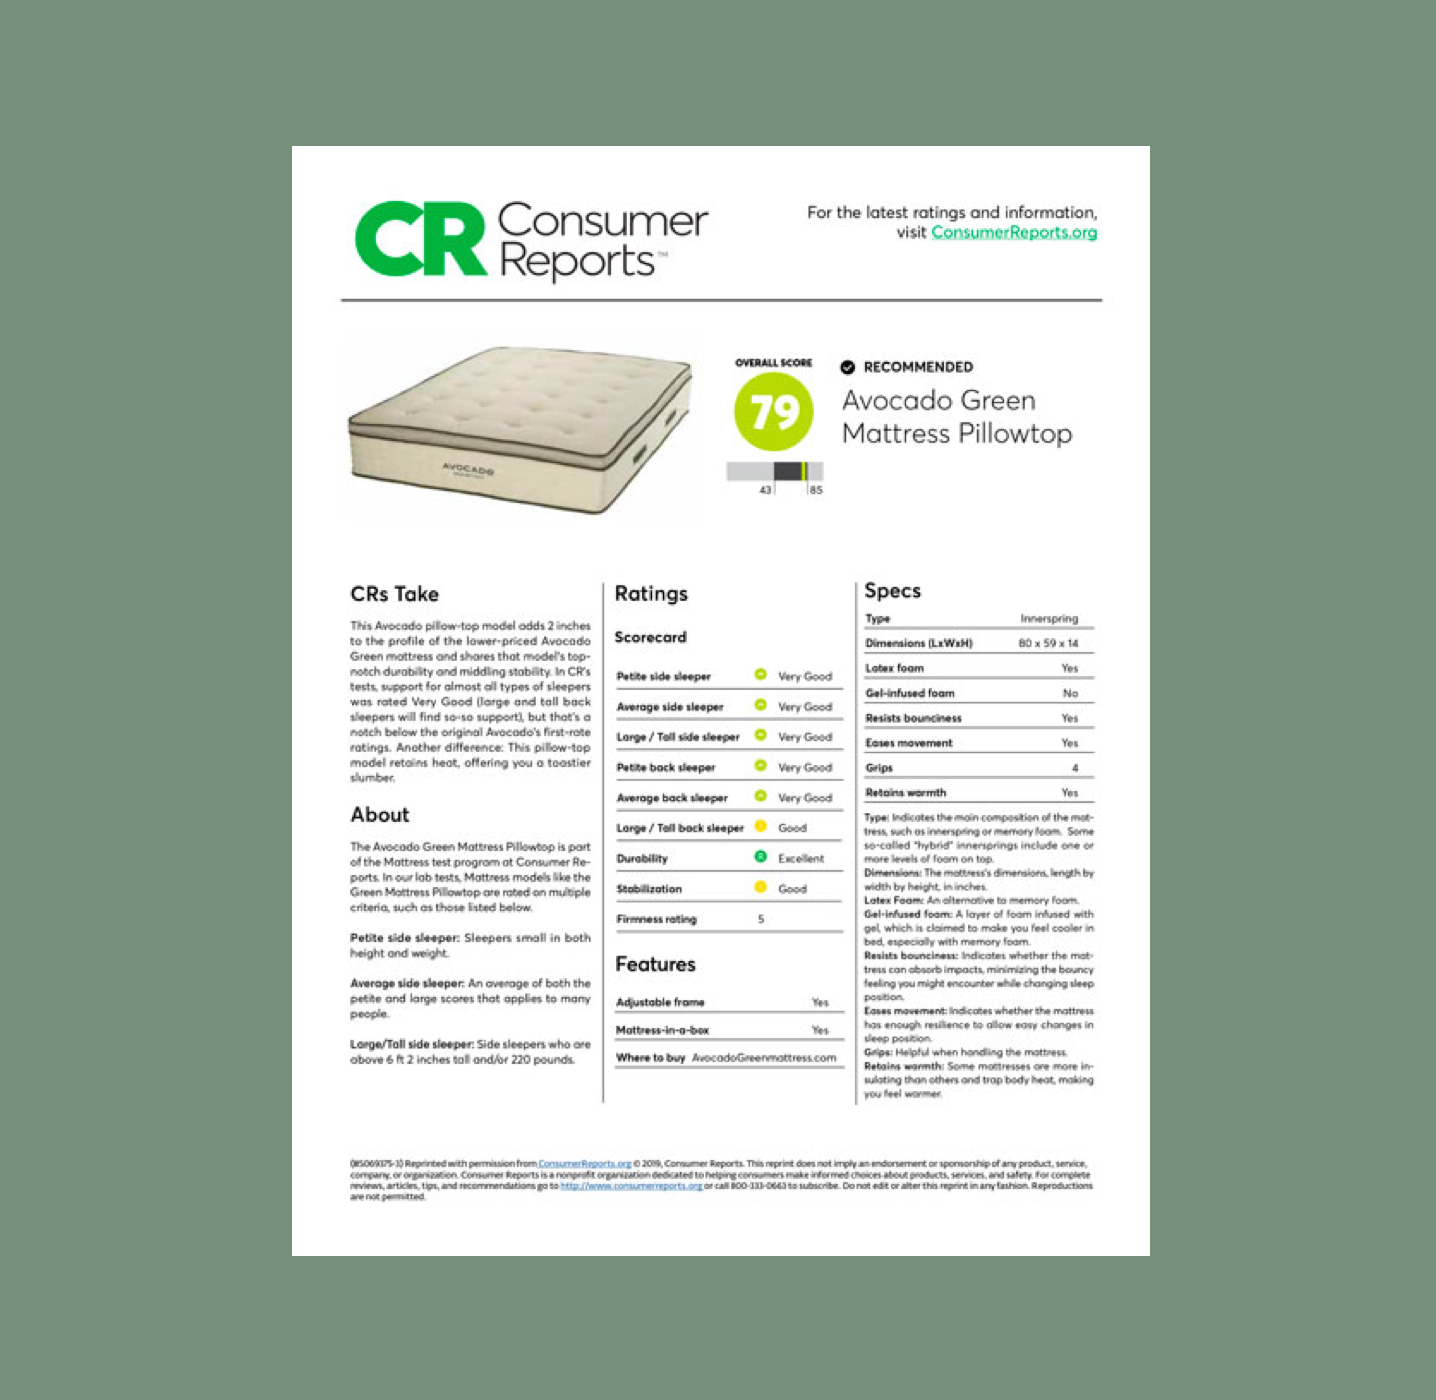 Consumer Reports Avocado Green Mattress Pillowtop Review